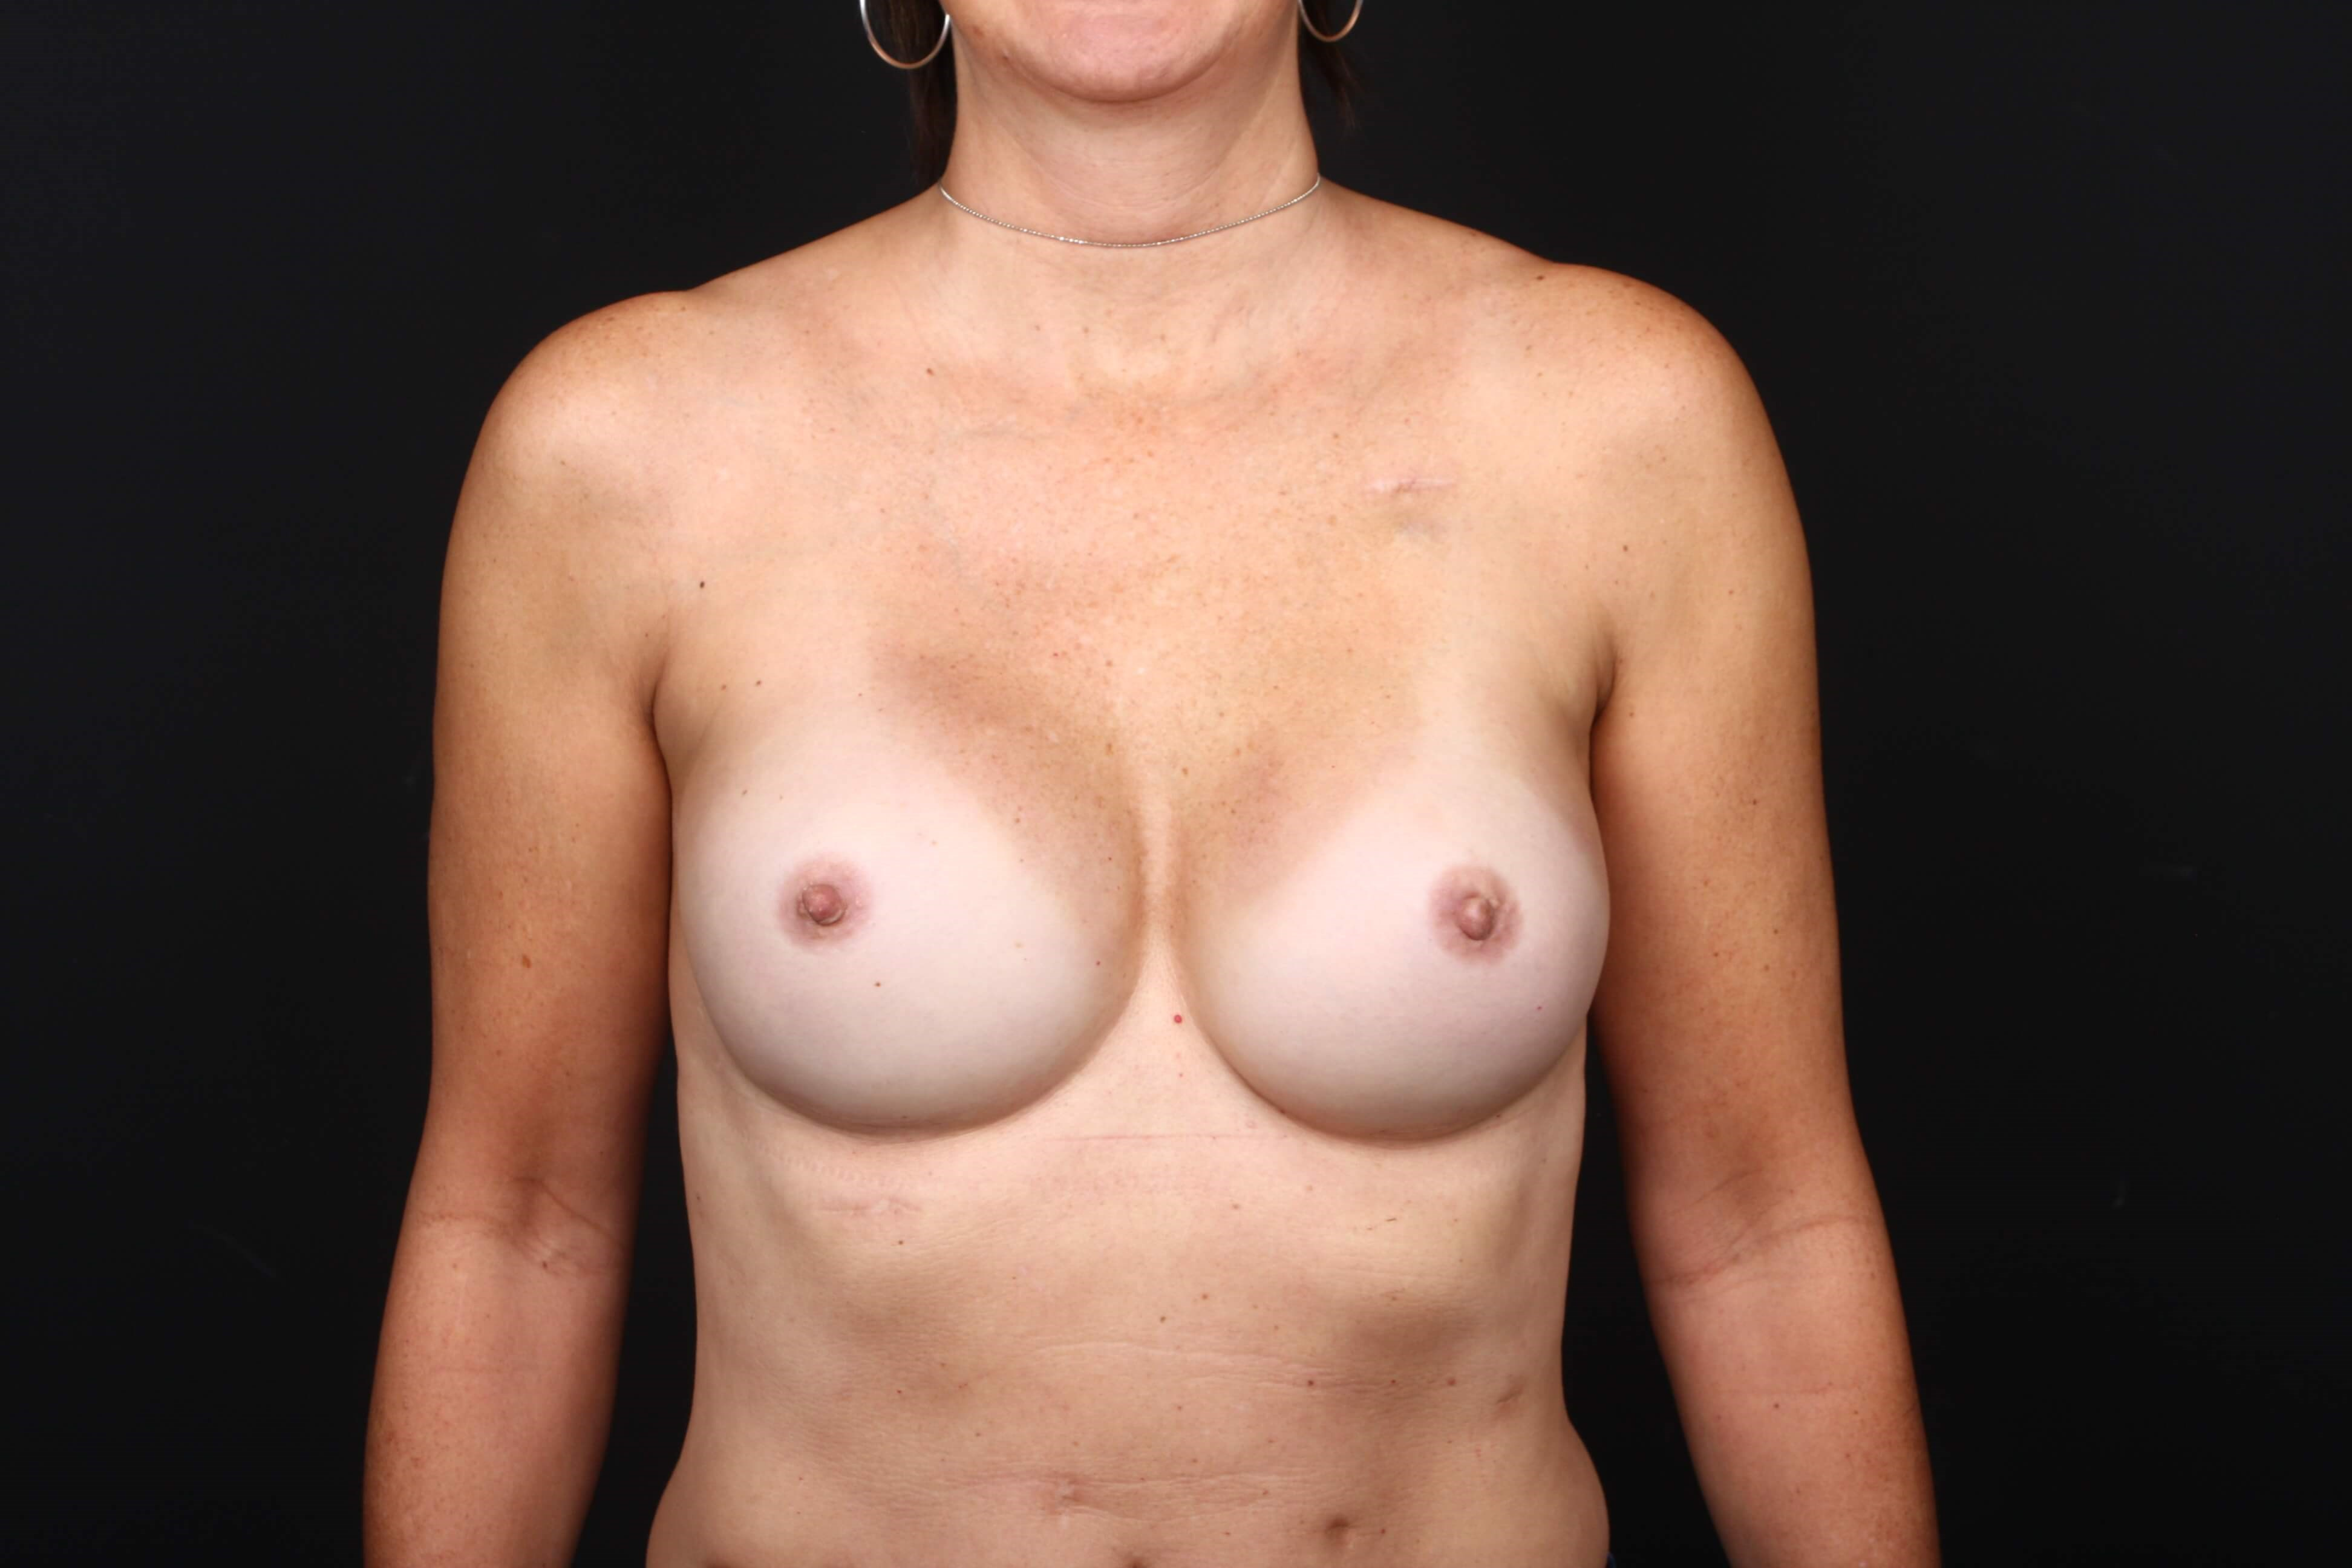 Prophylactic reconstruction Front view implants